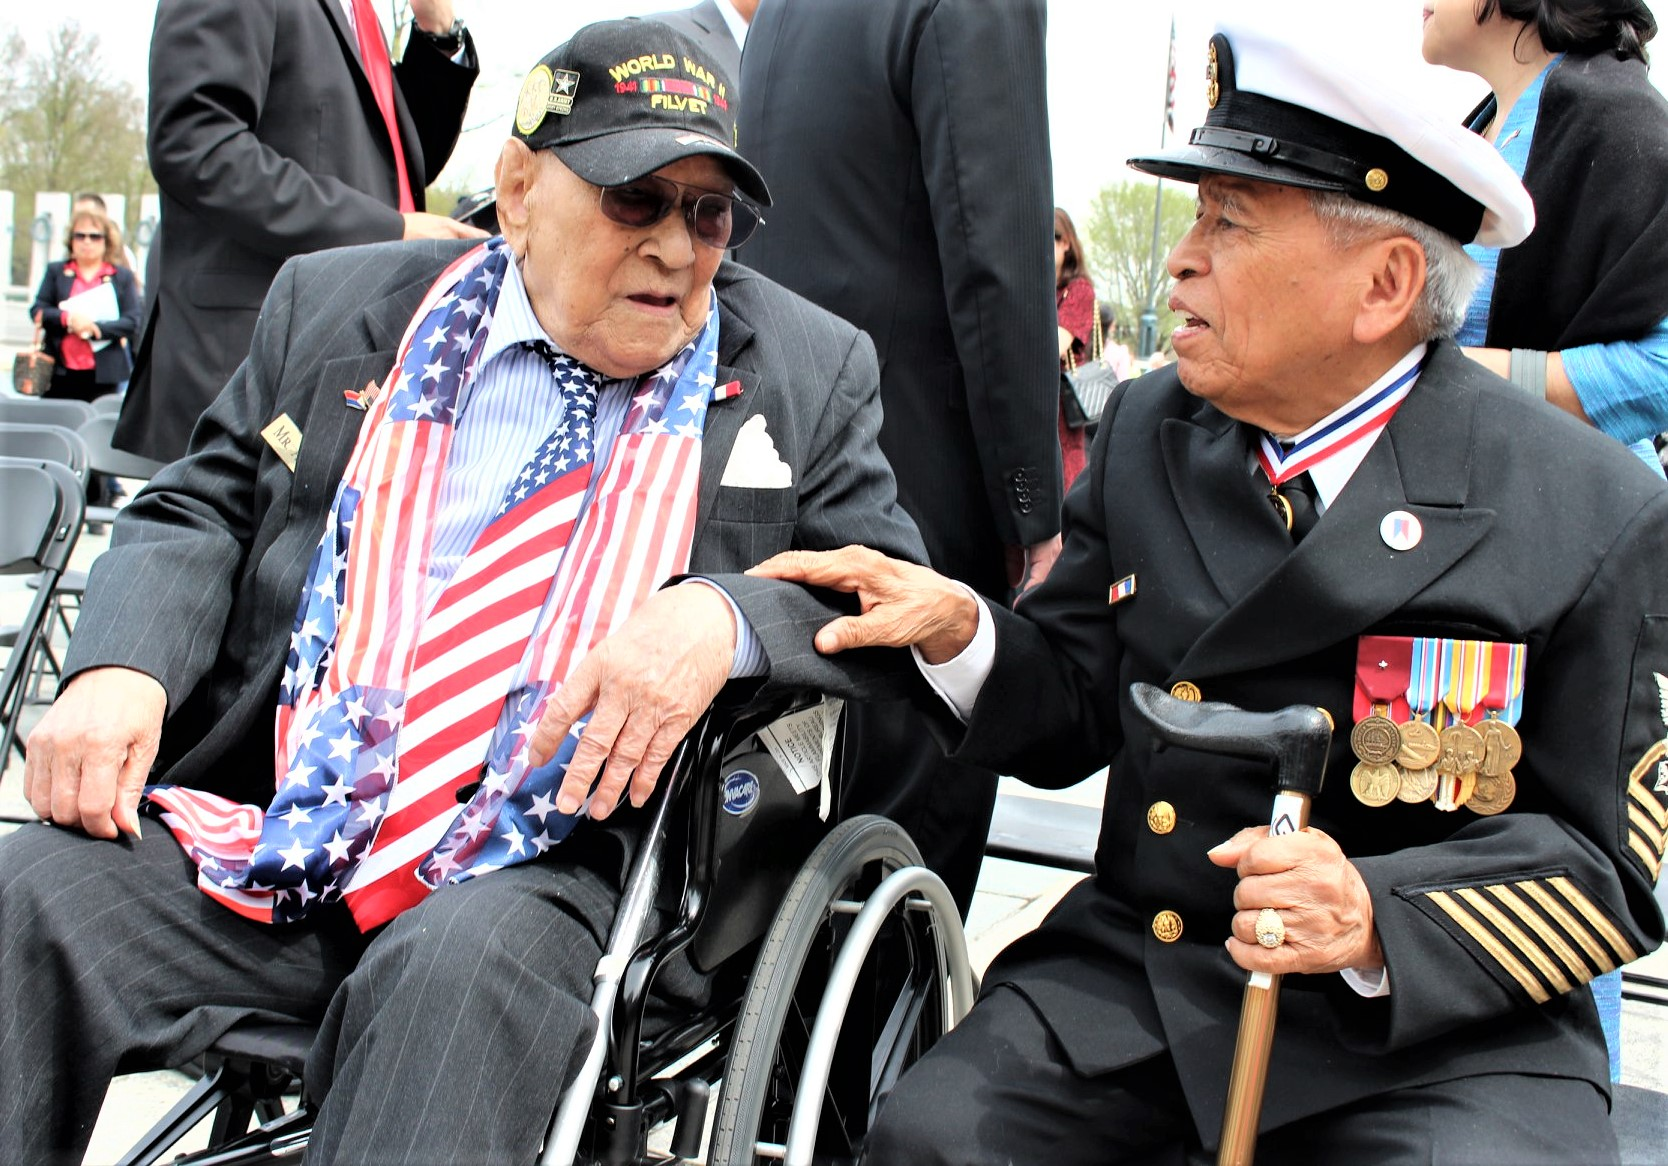 Filipino World War II Veterans Celestino Almeda (left) and Rey Cabacar share a light moment after the solemn ceremony. (Photo by Bing Branigin)